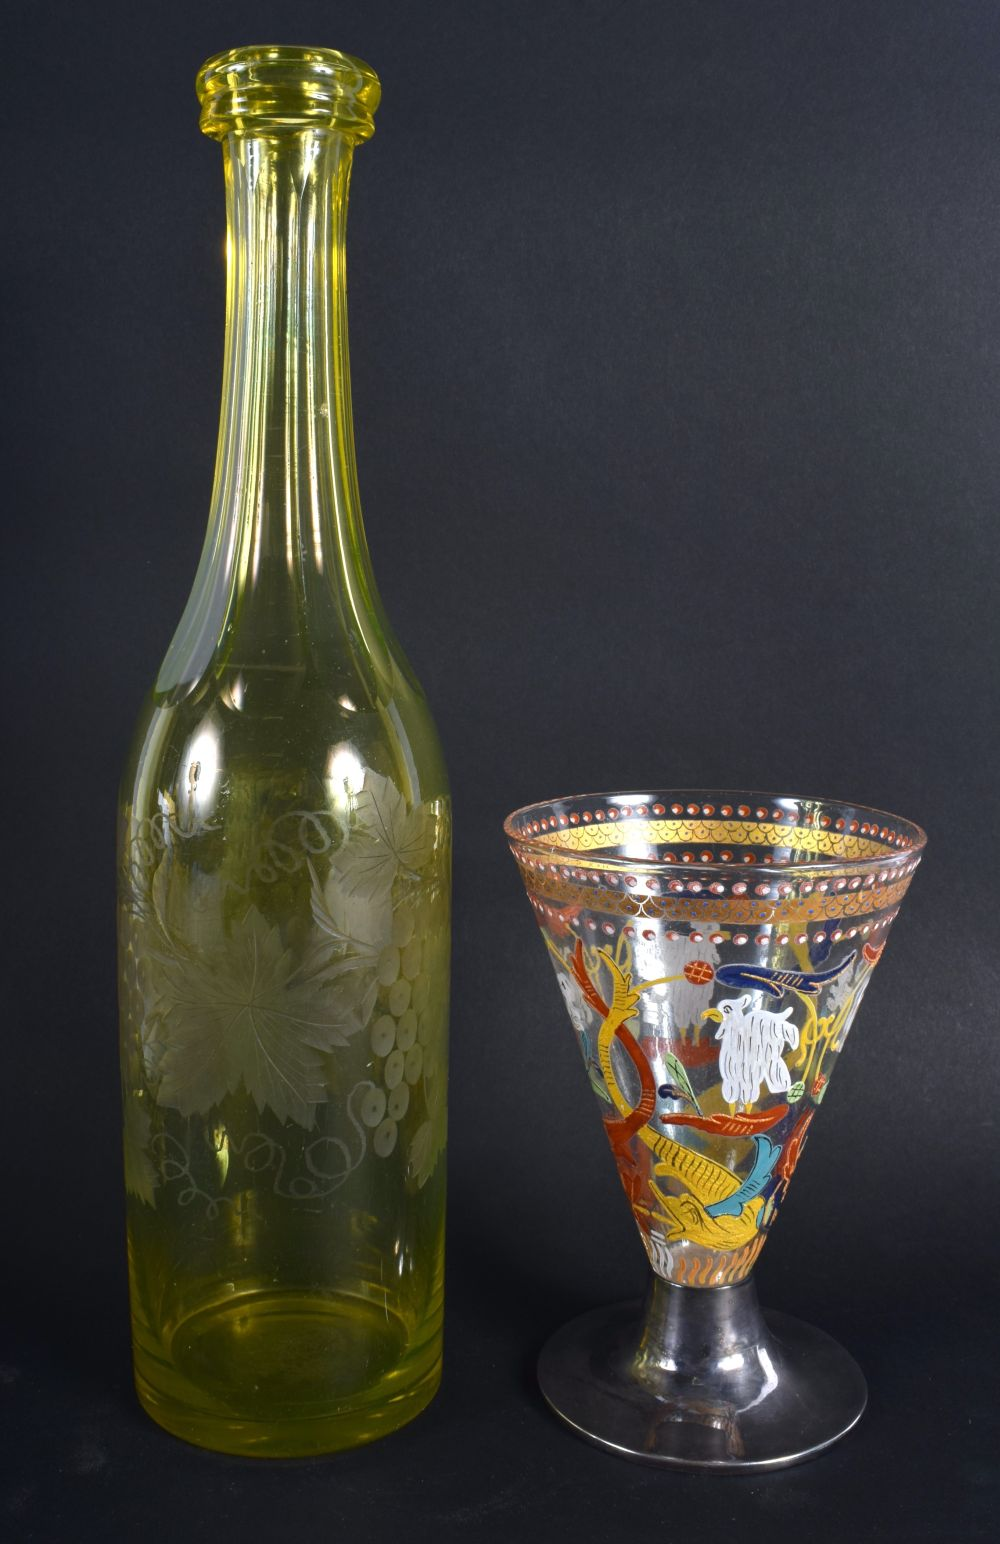 A VINTAGE YELLOW GLASS ENGRAVED DECANTER together with an early silver mounted European glass goblet - Image 2 of 2